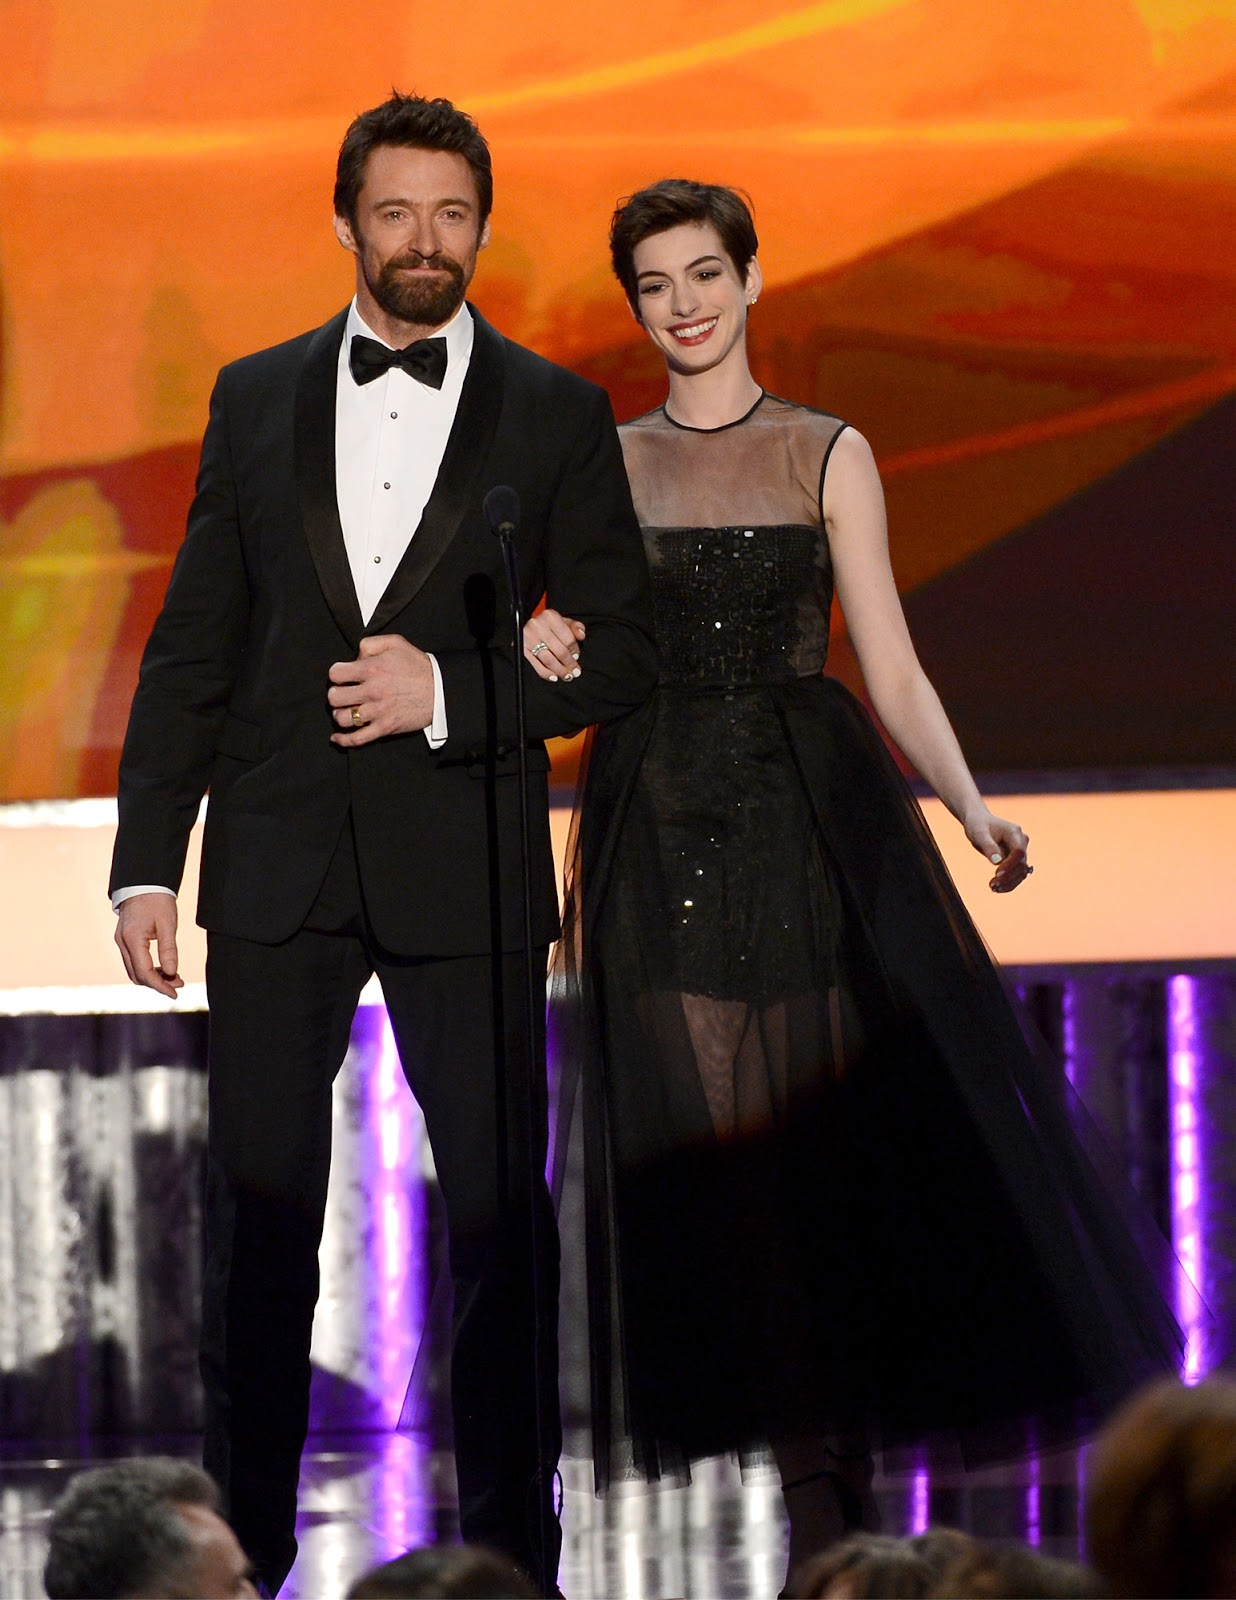 http://3.bp.blogspot.com/-IrjaiLyIltY/UQZ6Ix8Nr3I/AAAAAAABTFA/T6TDZBZGEhA/s1600/Anne_Hathaway-Hugh_Jackman-19th_Annual_Screen_Actors_Guild_Awards-1_27_2013-001.jpg